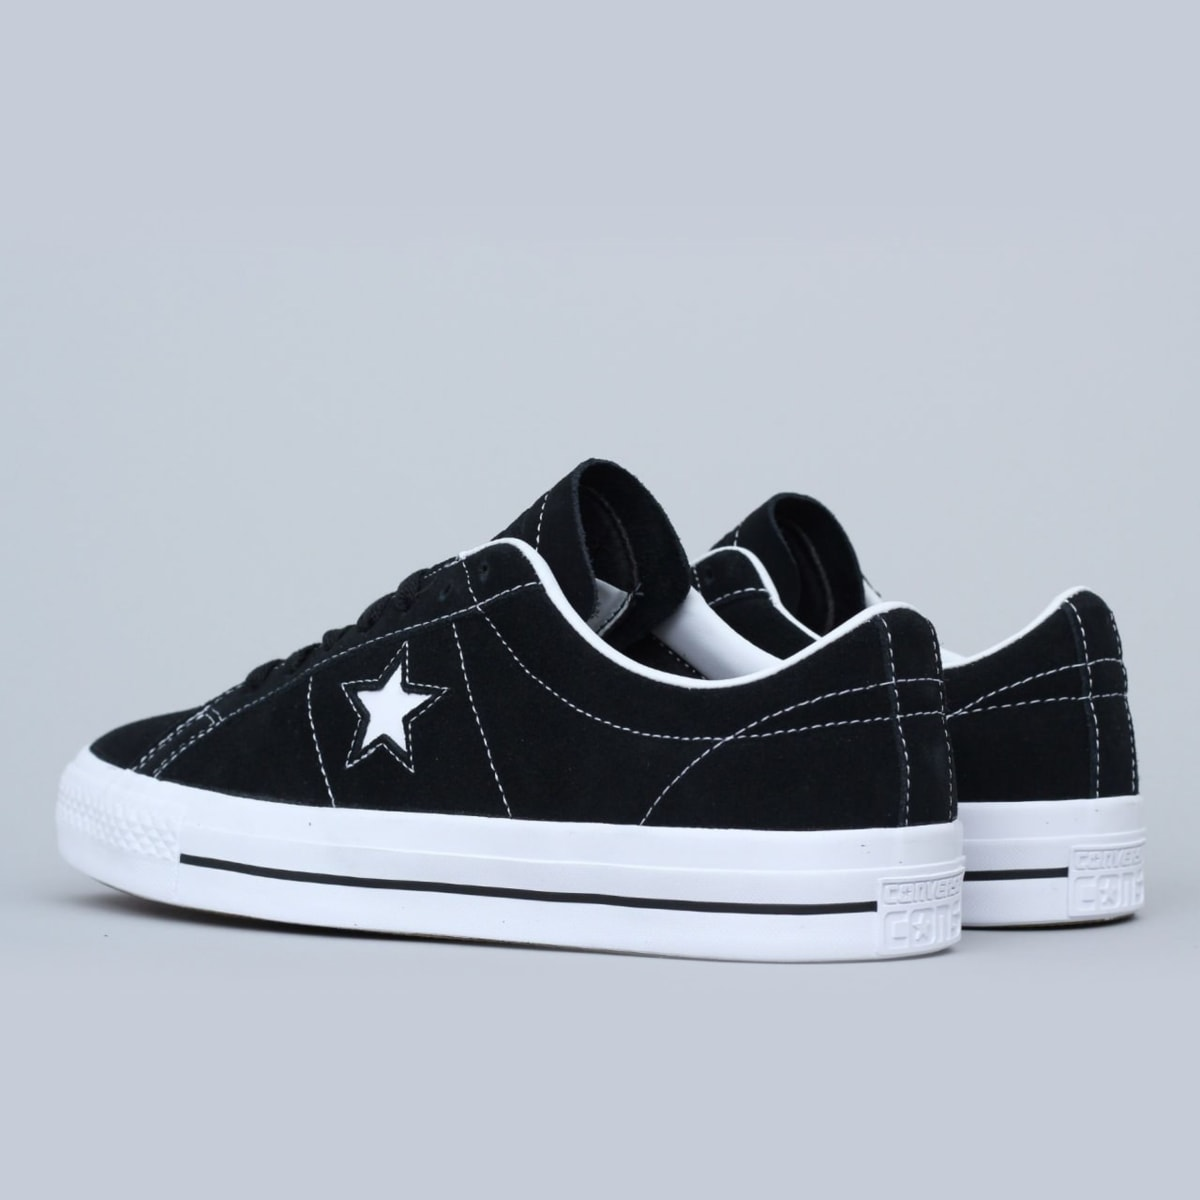 7910f9e24744 Shop Converse One Star Pro Shoes OX Black   White   White